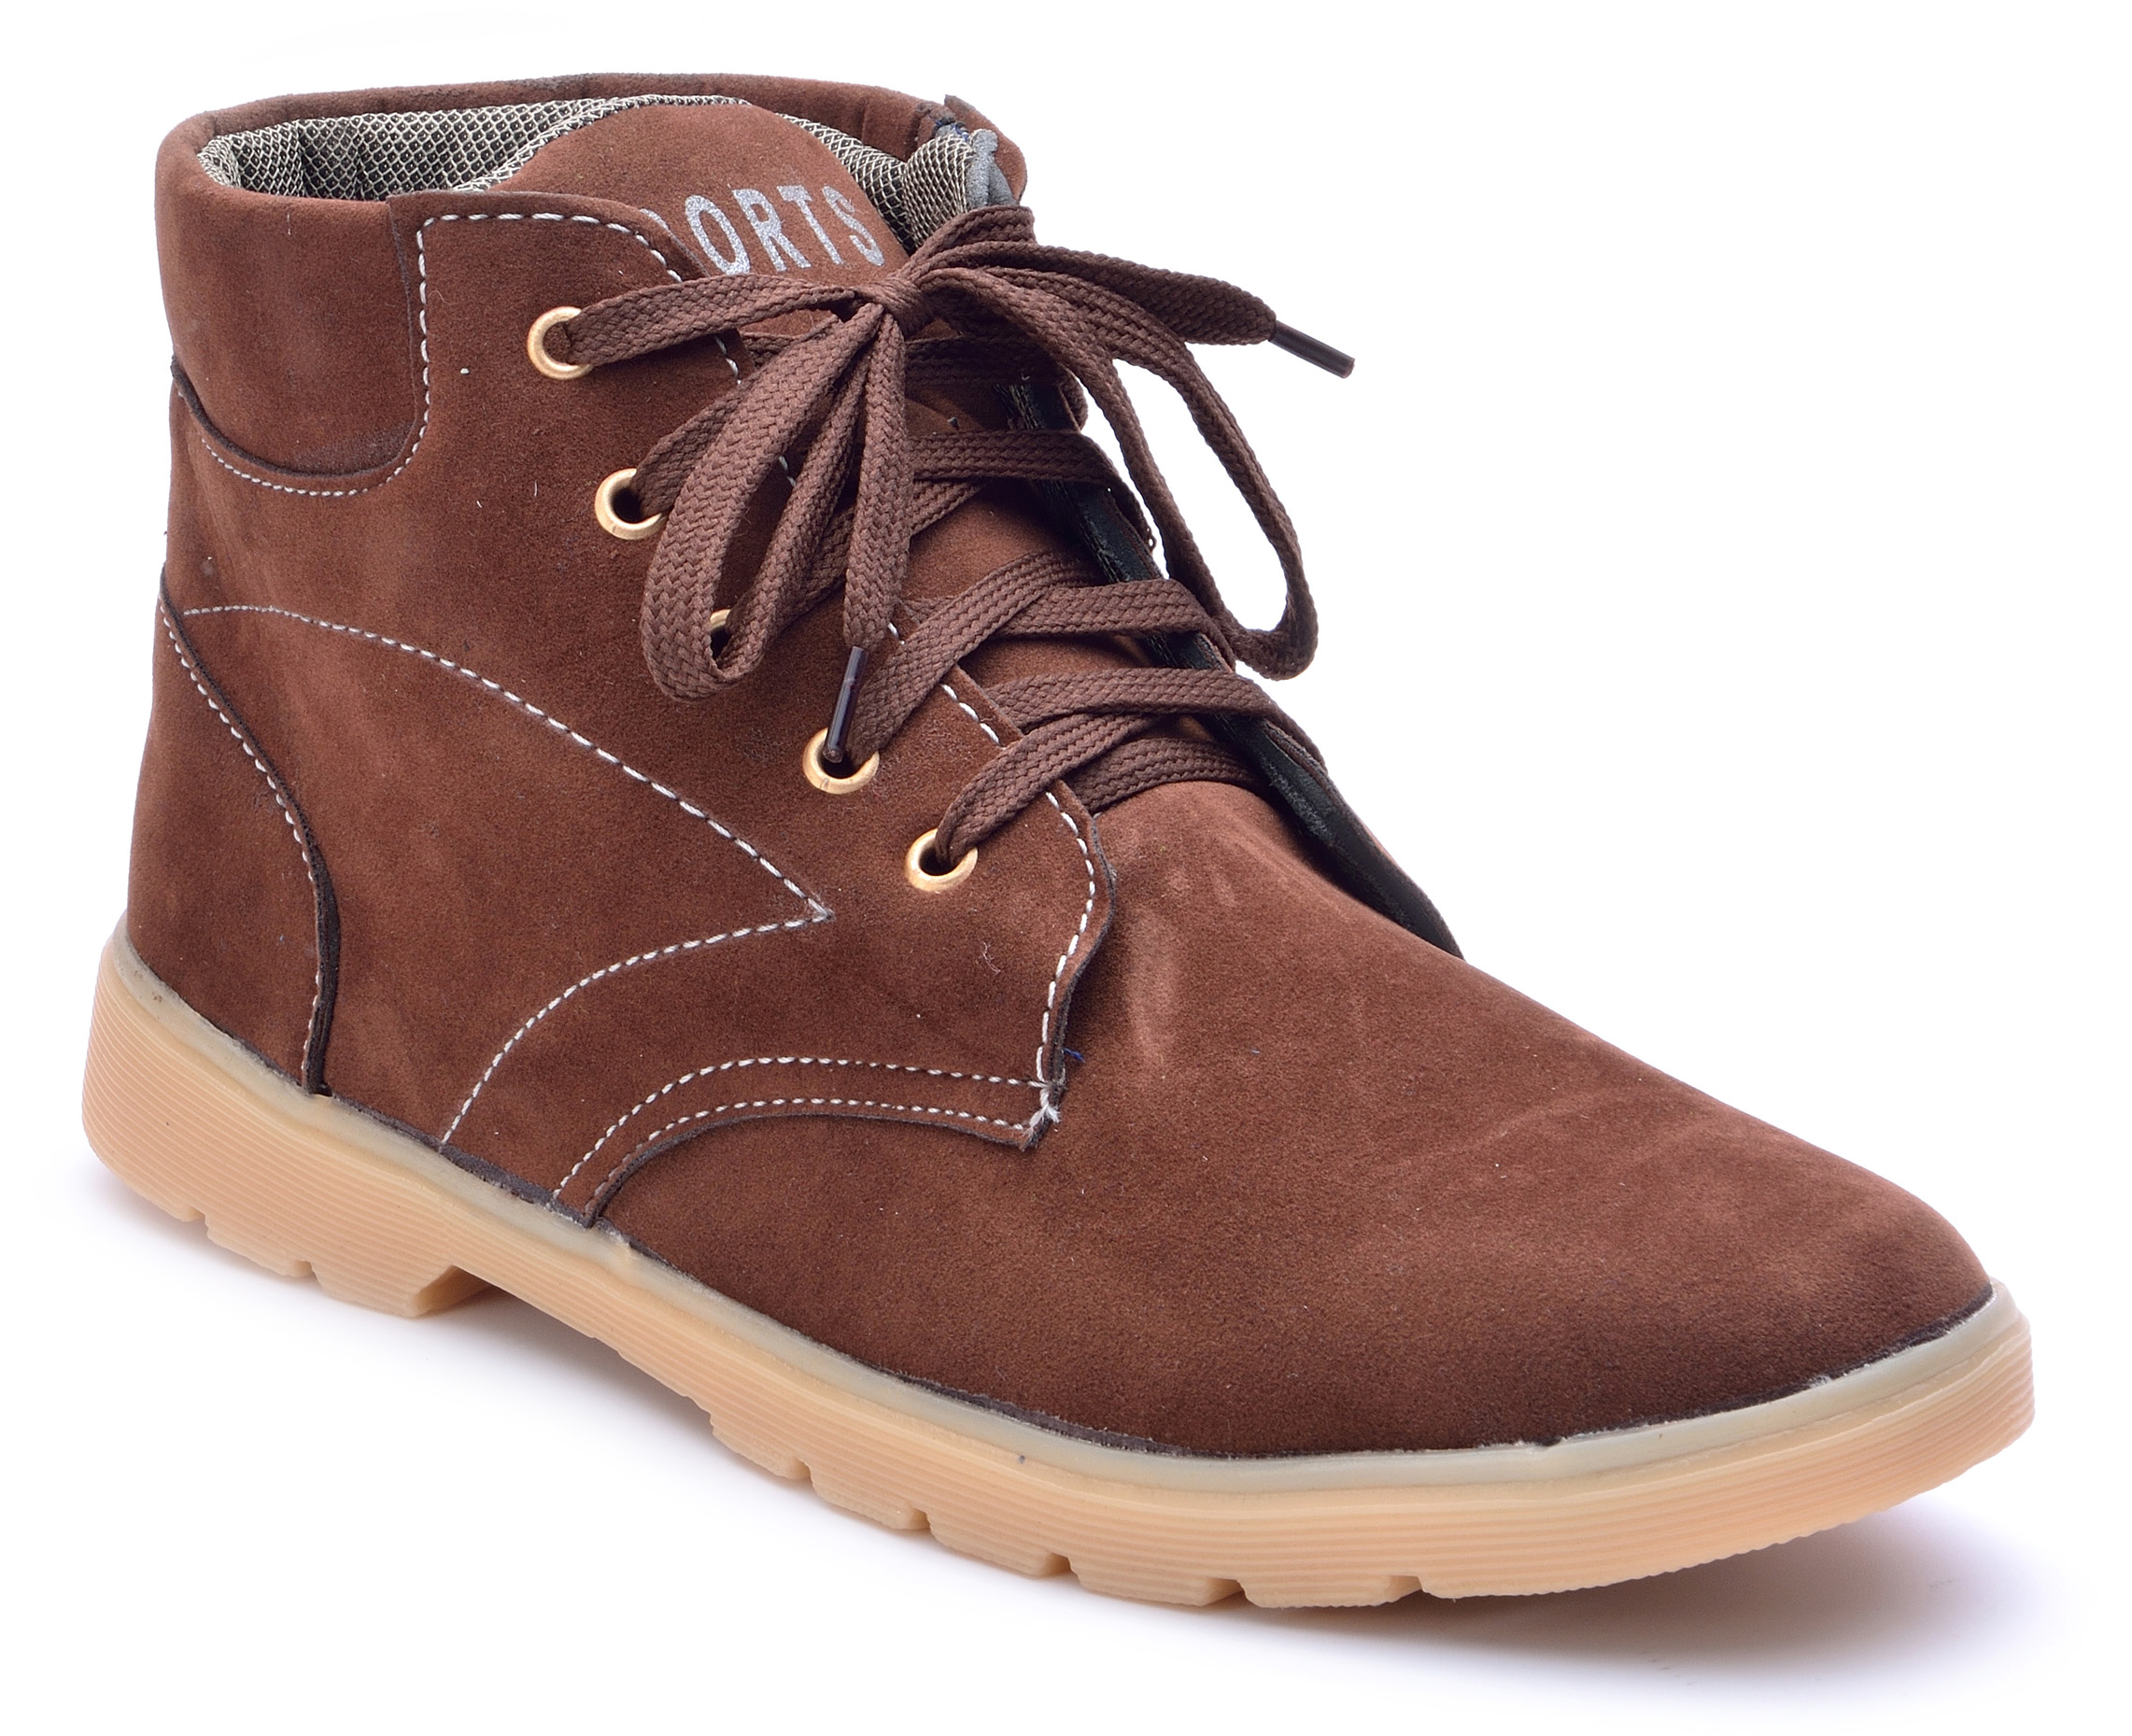 Boysons brown suede ankle length boots